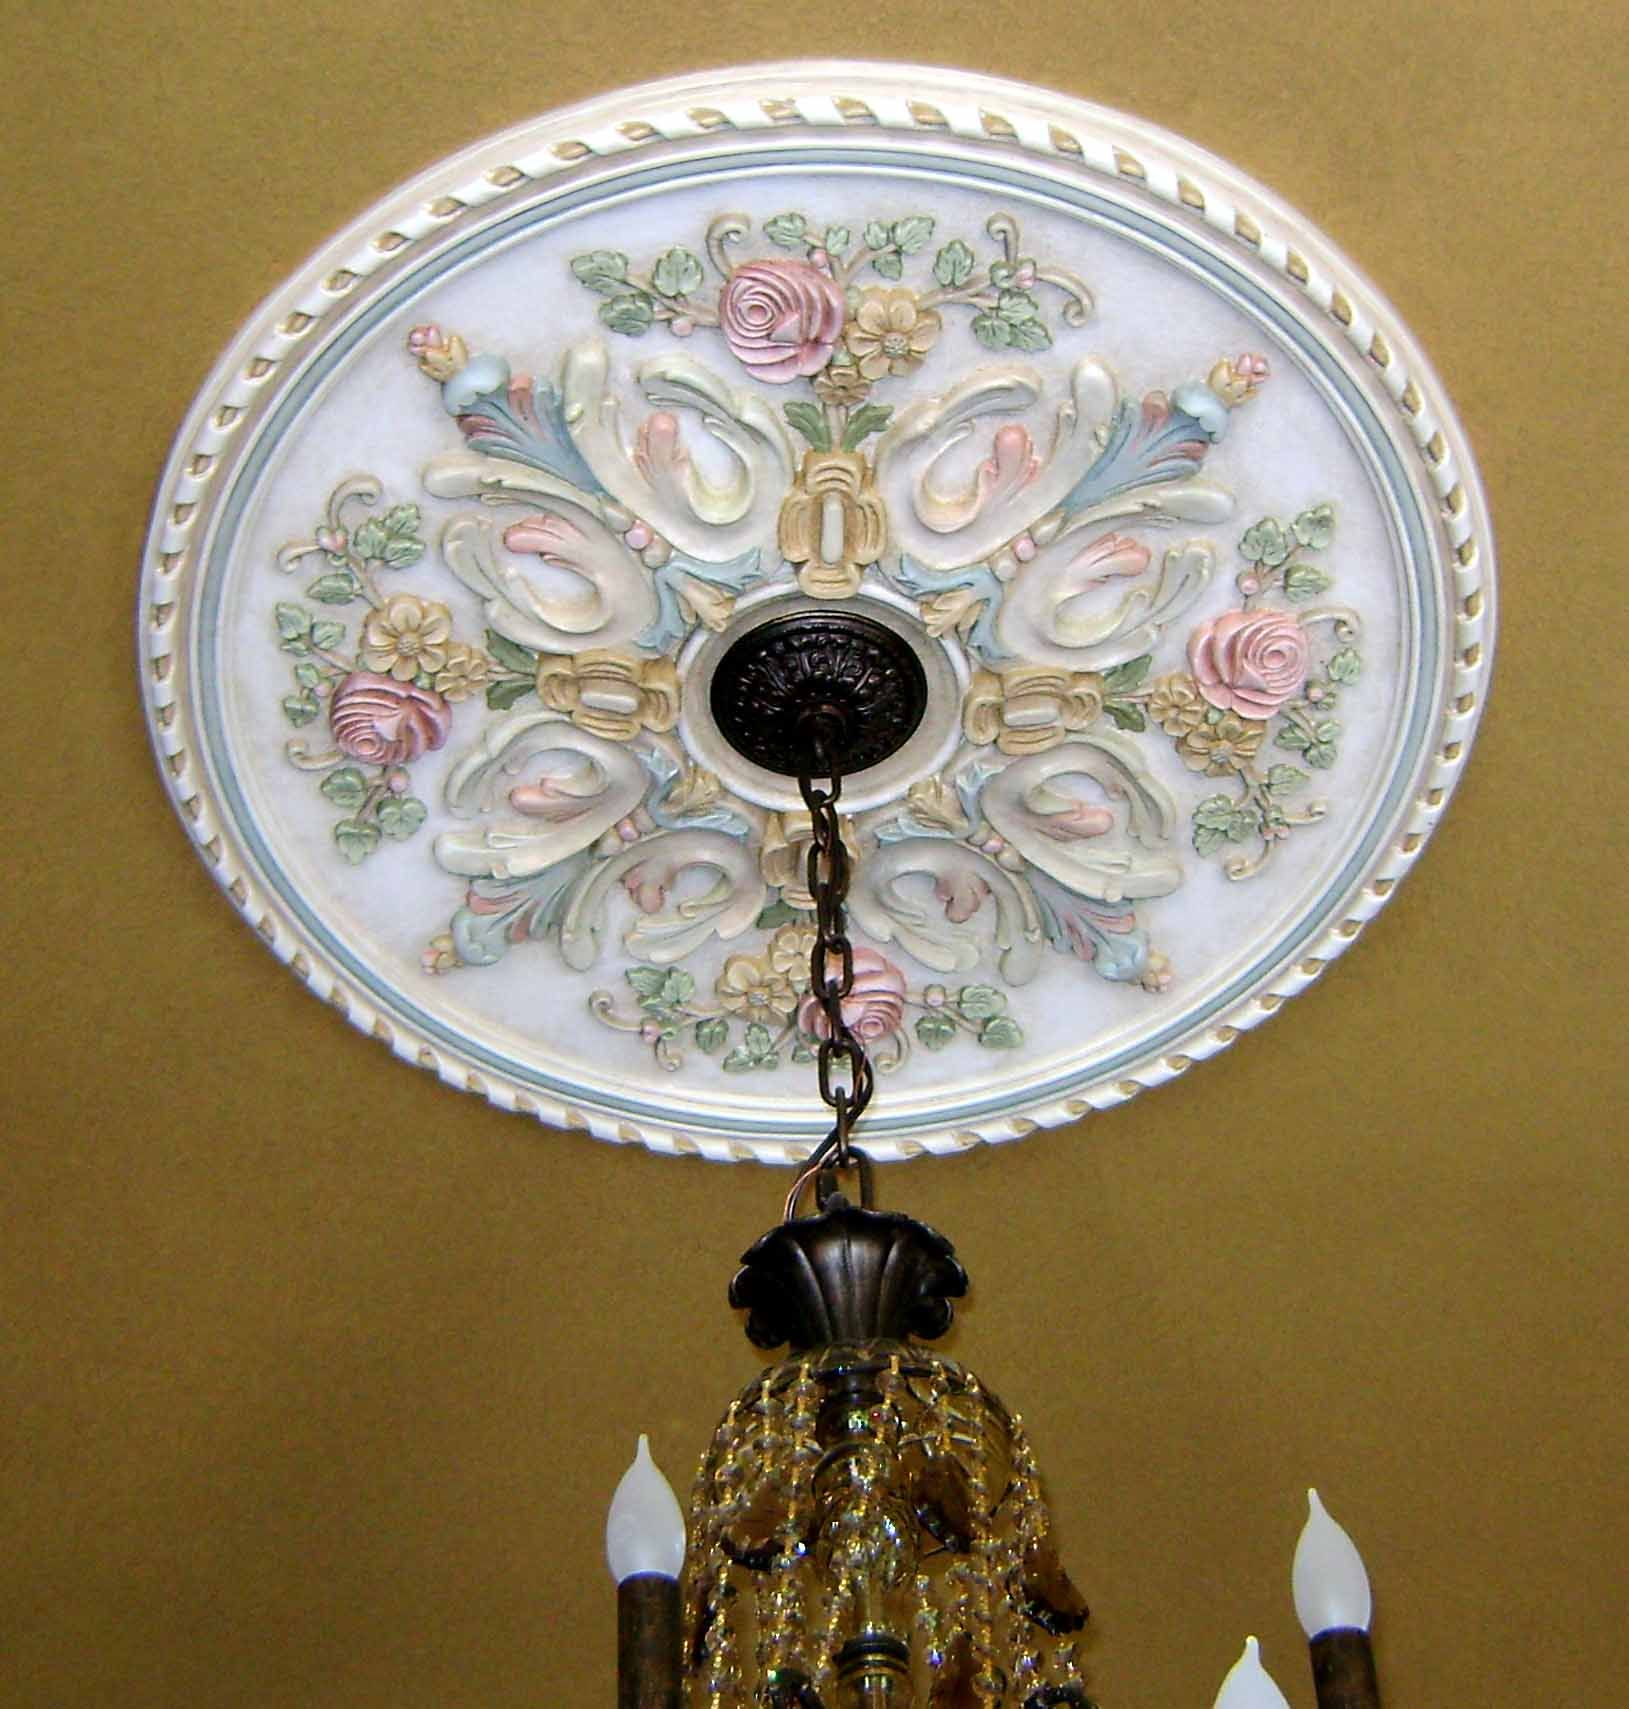 painted installng a medallion decorative tutorial bergman for artisan or lynda on light fixture fan ceiling img painting